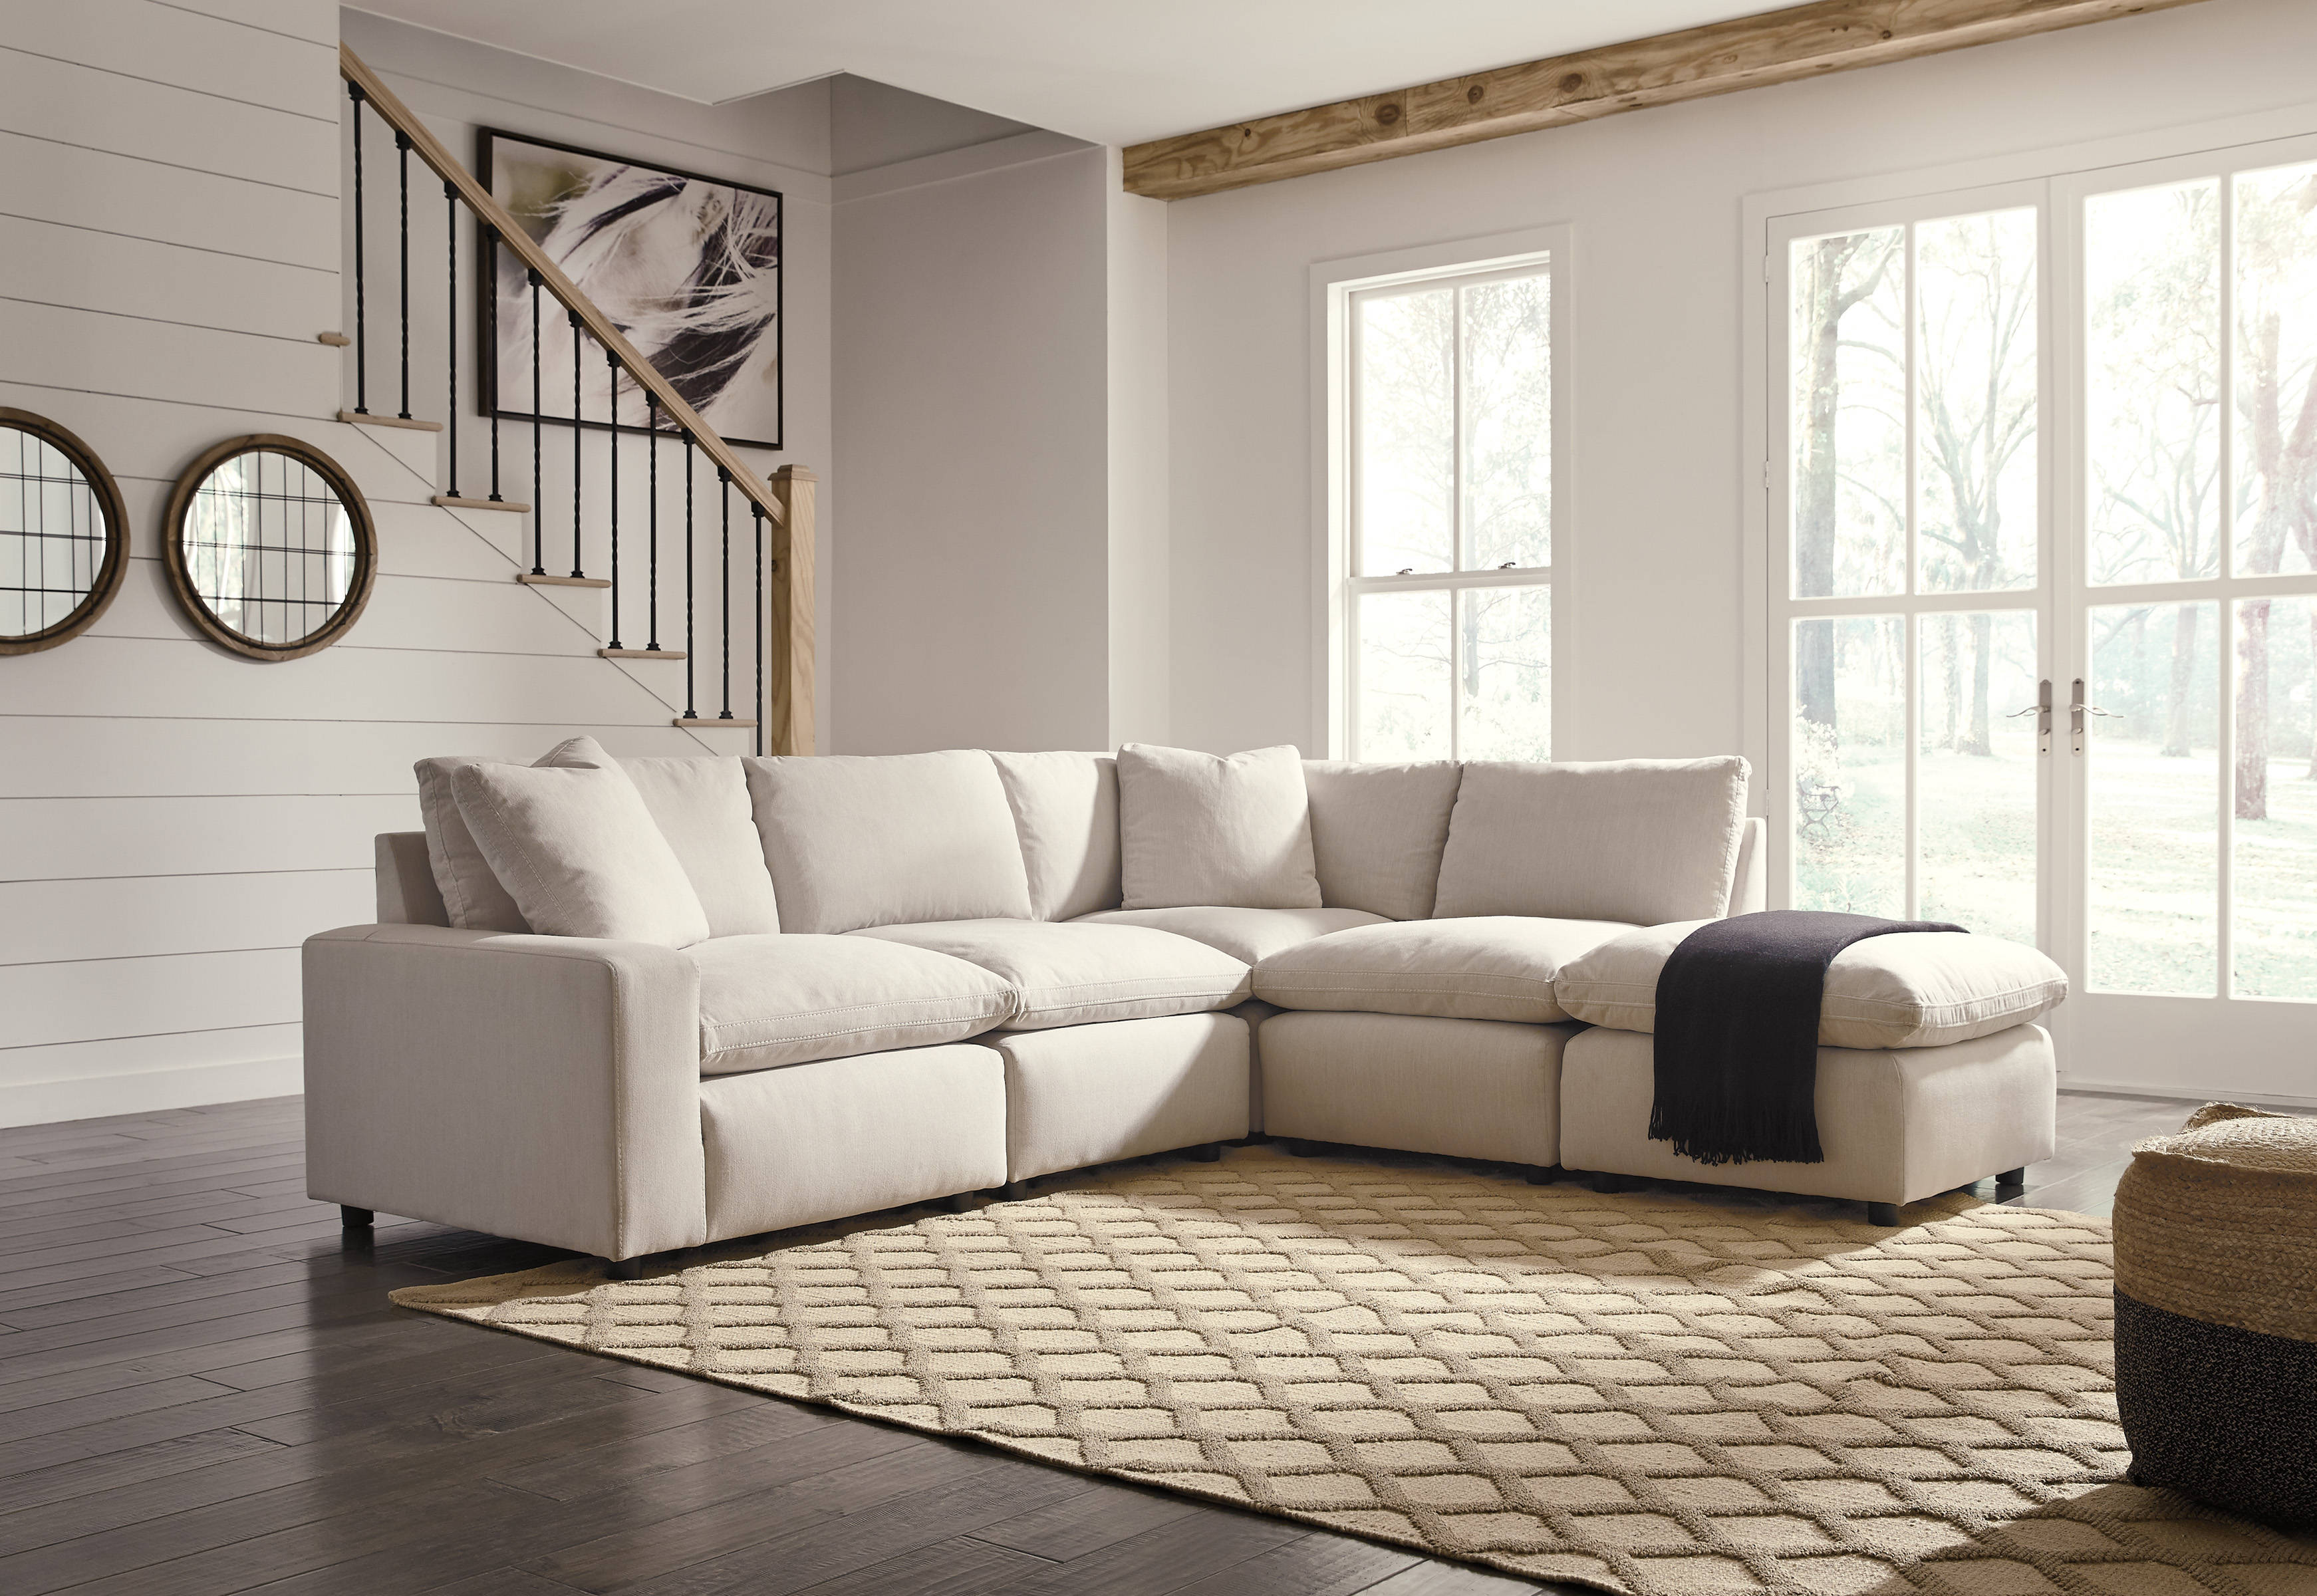 Ashley Furniture Savesto Ivory Sectional With Ottoman